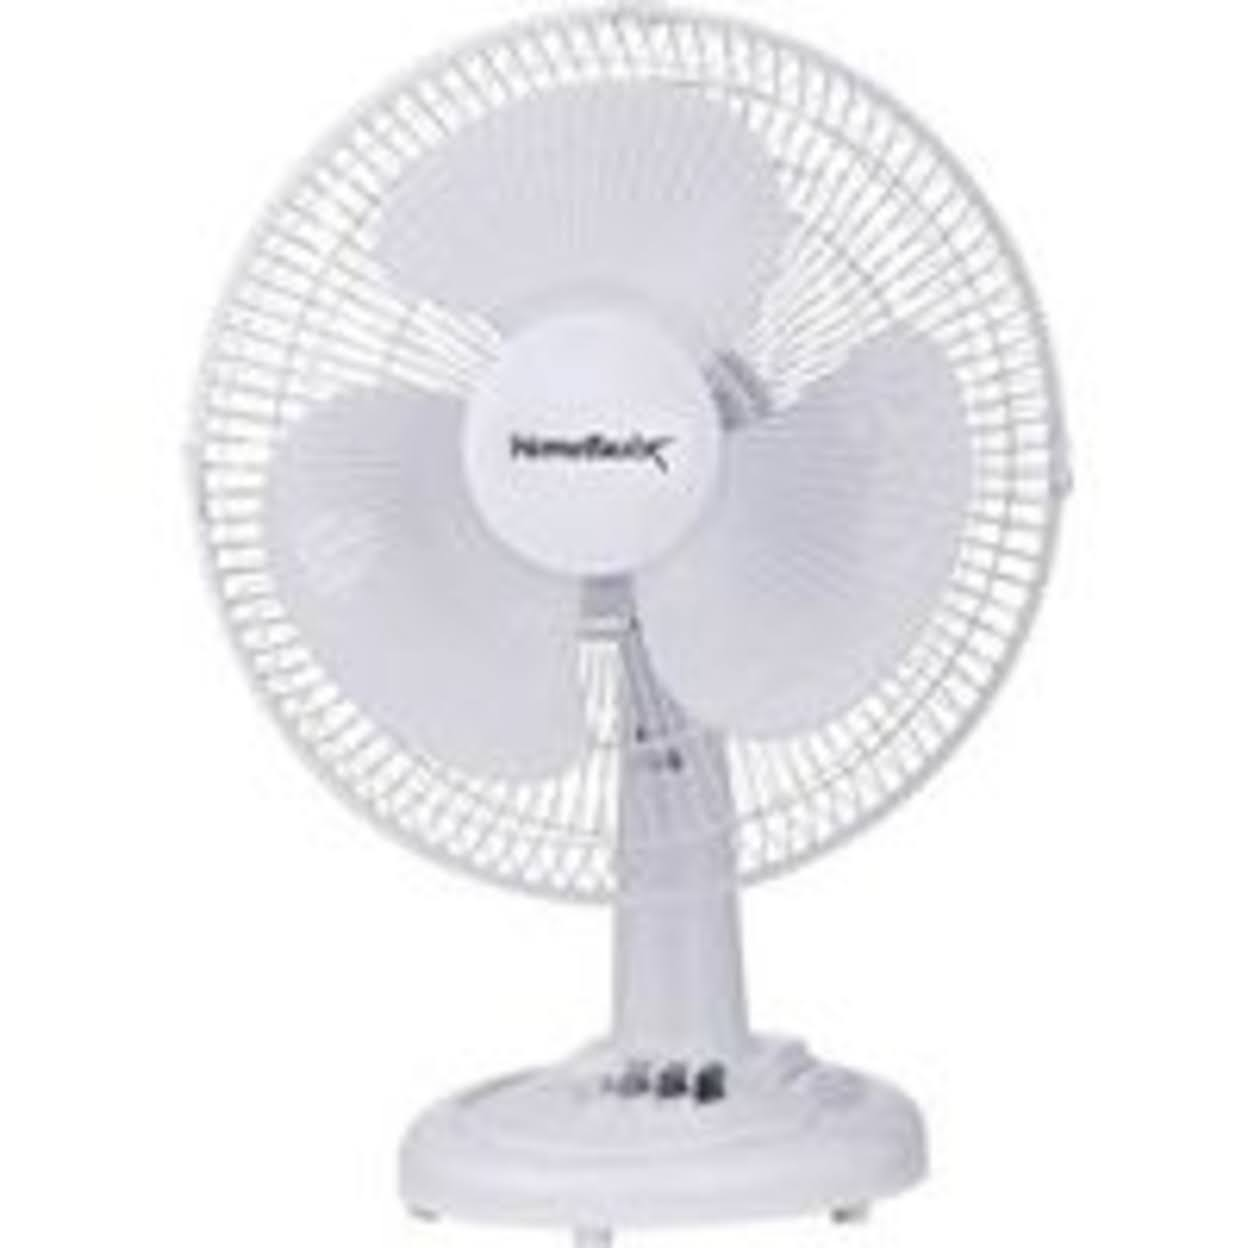 Homebasix 3 Speed Oscillating Table Fan - 12 in